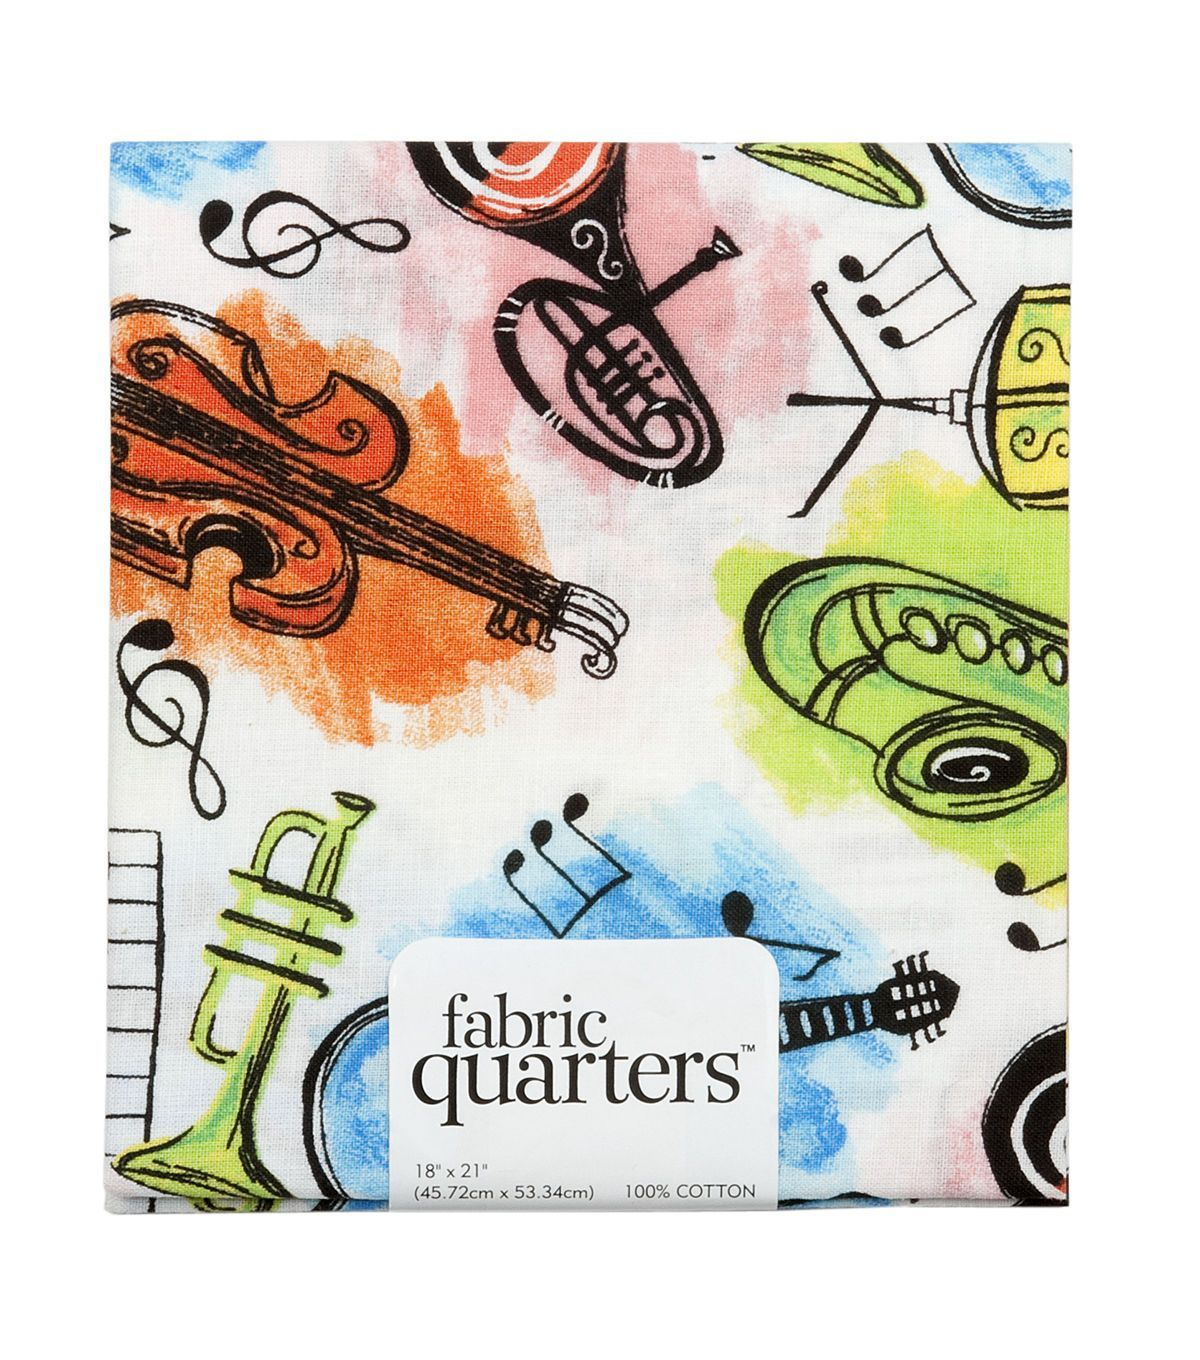 Fabric quarters assorted fabric music products